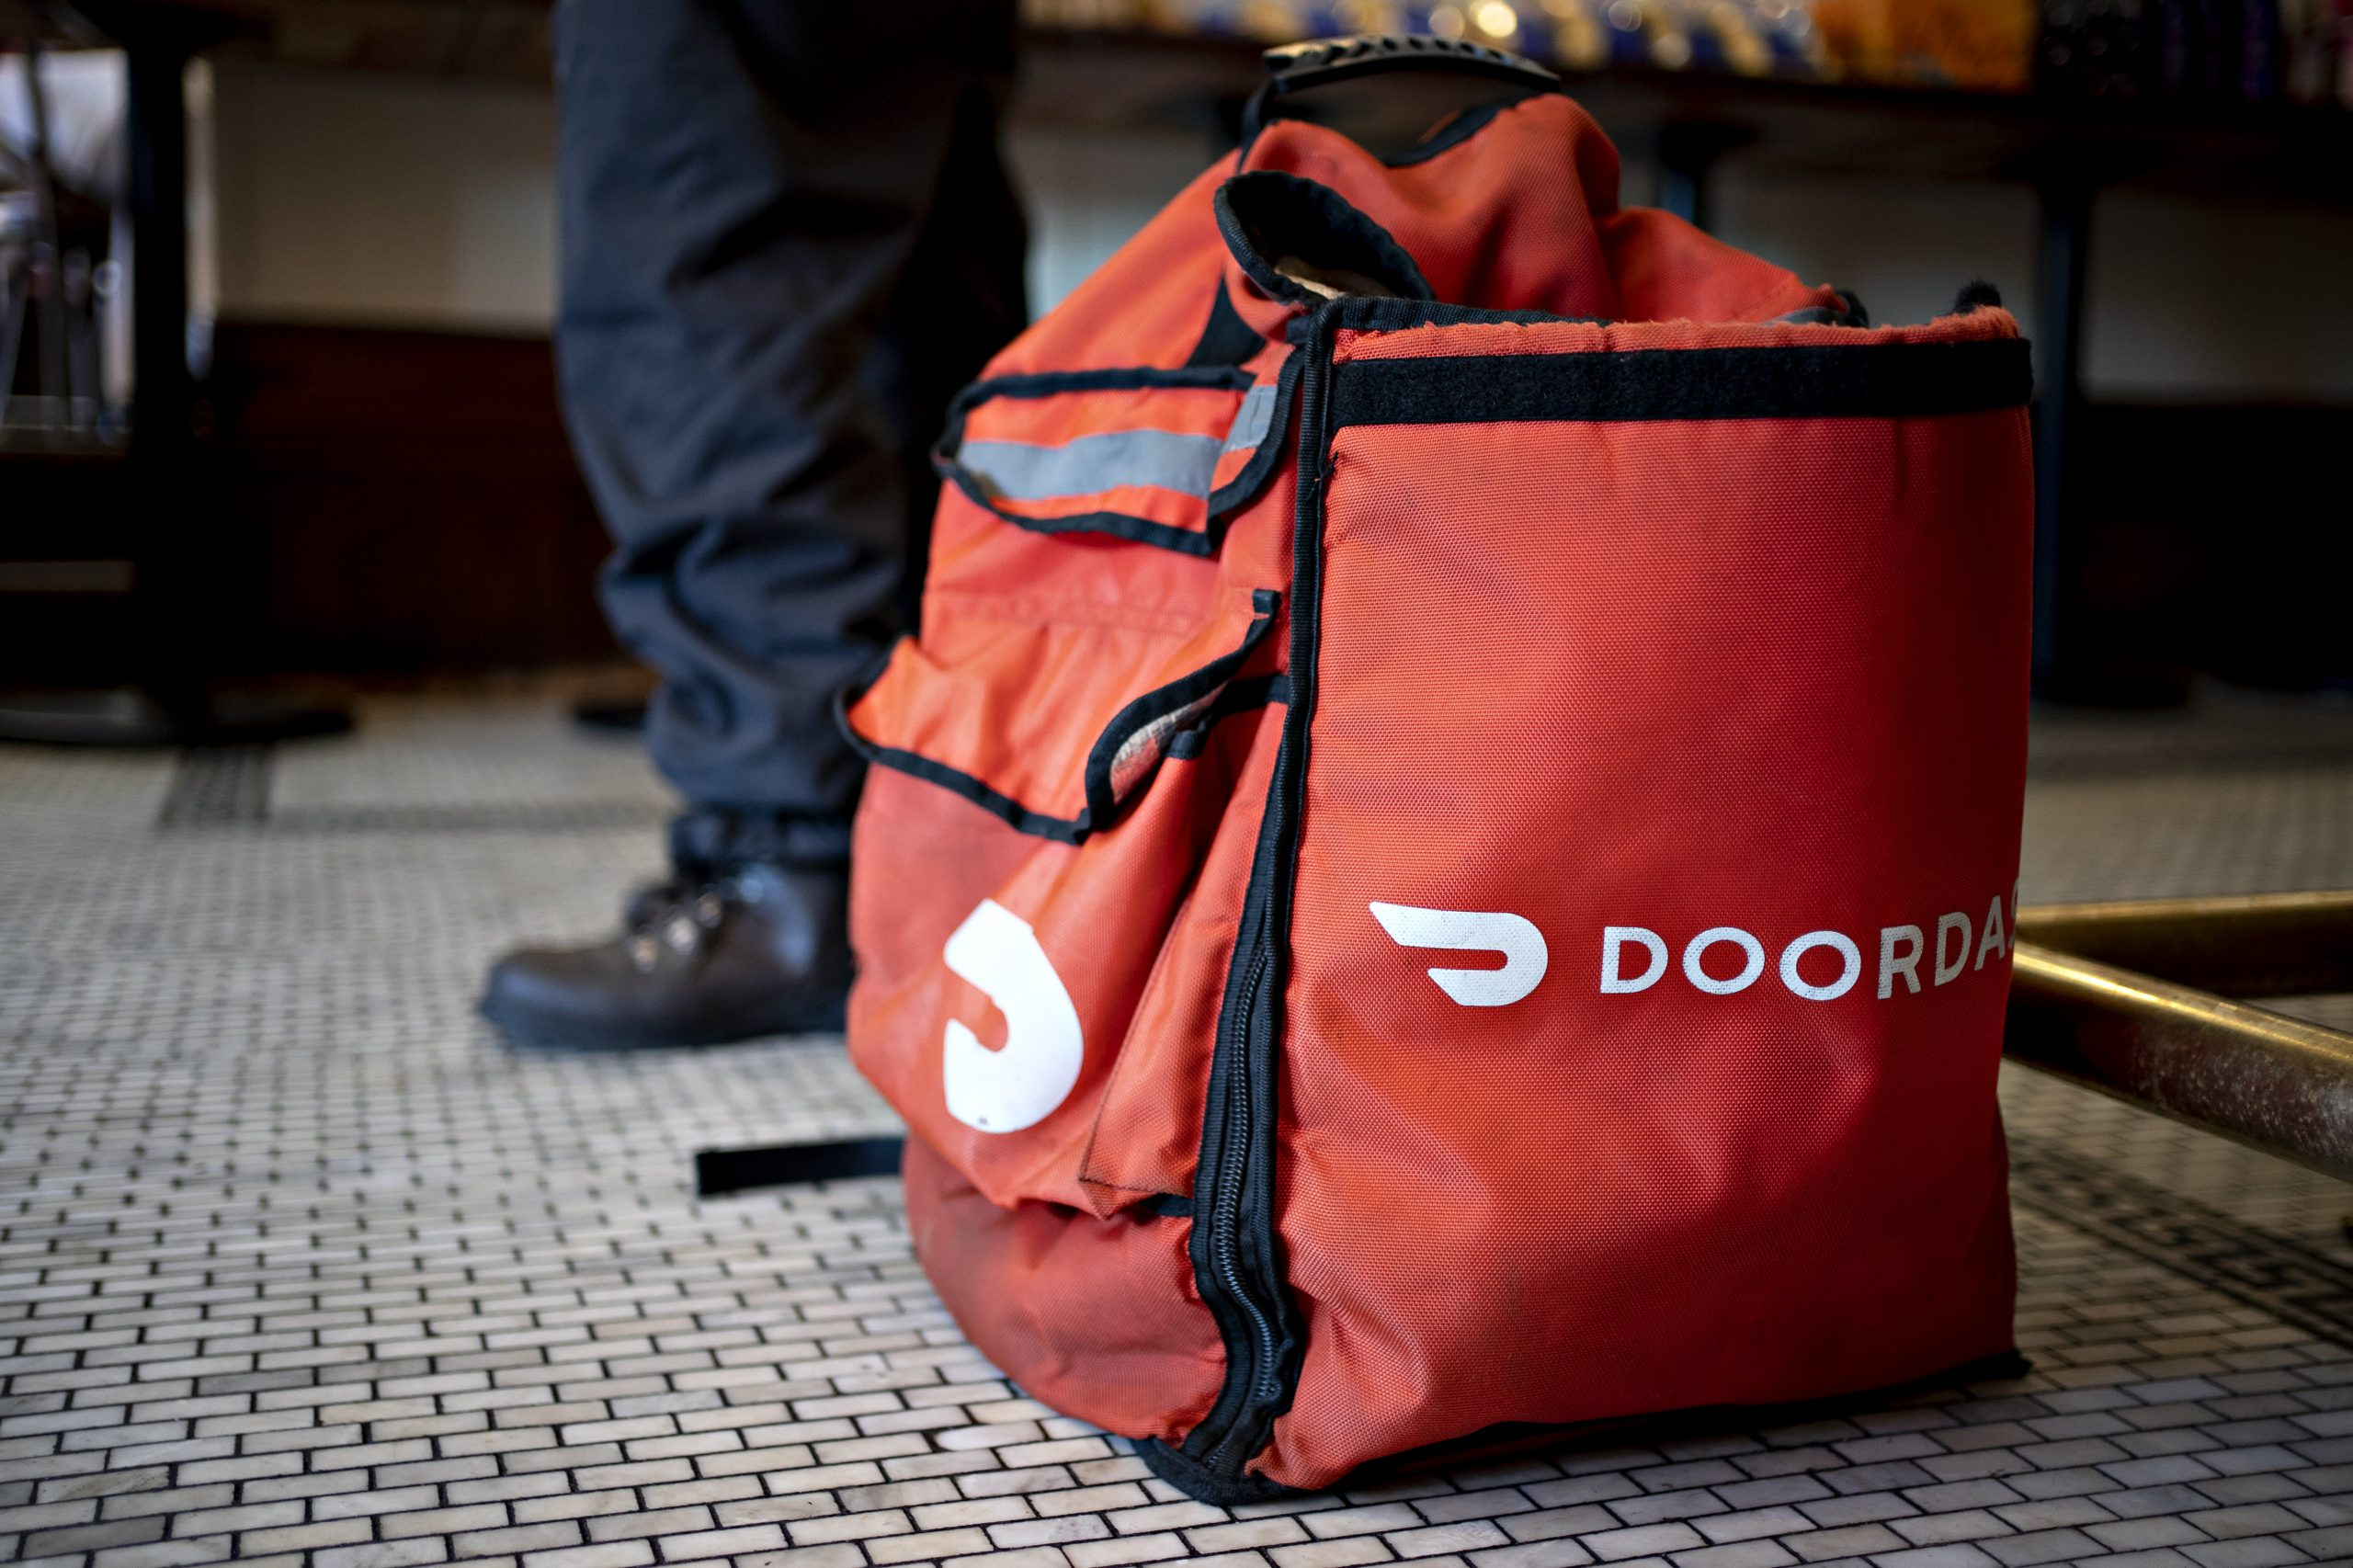 Stocks making the biggest moves midday: DoorDash, Airbnb, Denny's, Virgin Galactic, Arvinas & more